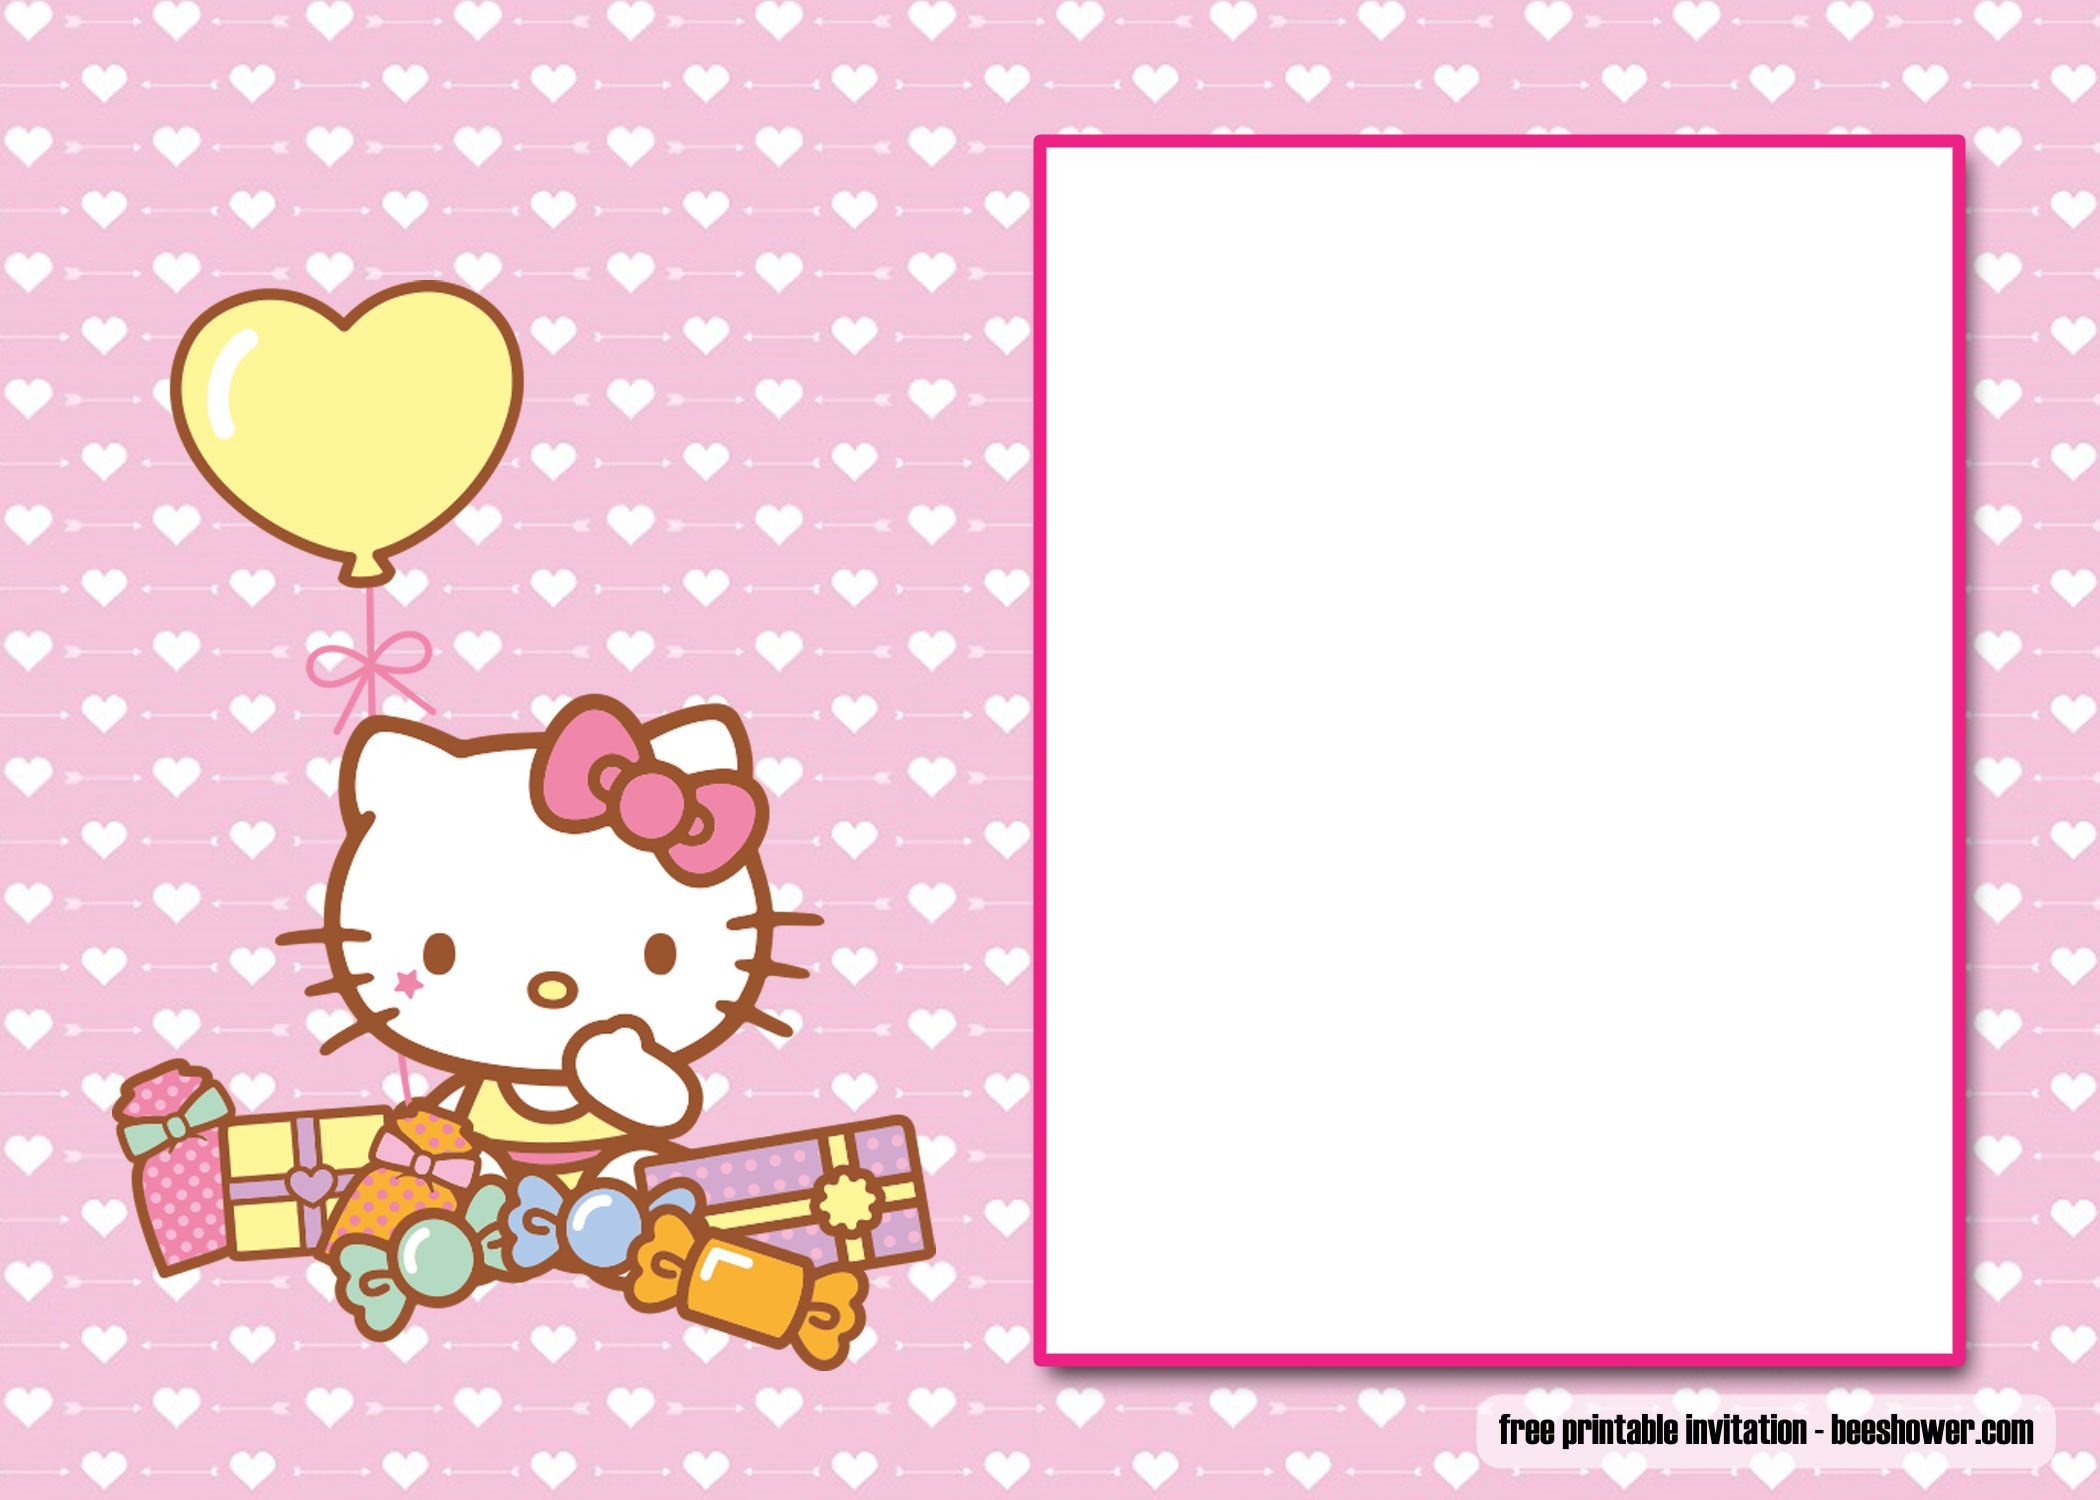 Free Free Perfect Hello Kitty Baby Shower Invitations   Beeshower - Free Printable Hello Kitty Baby Shower Invitations